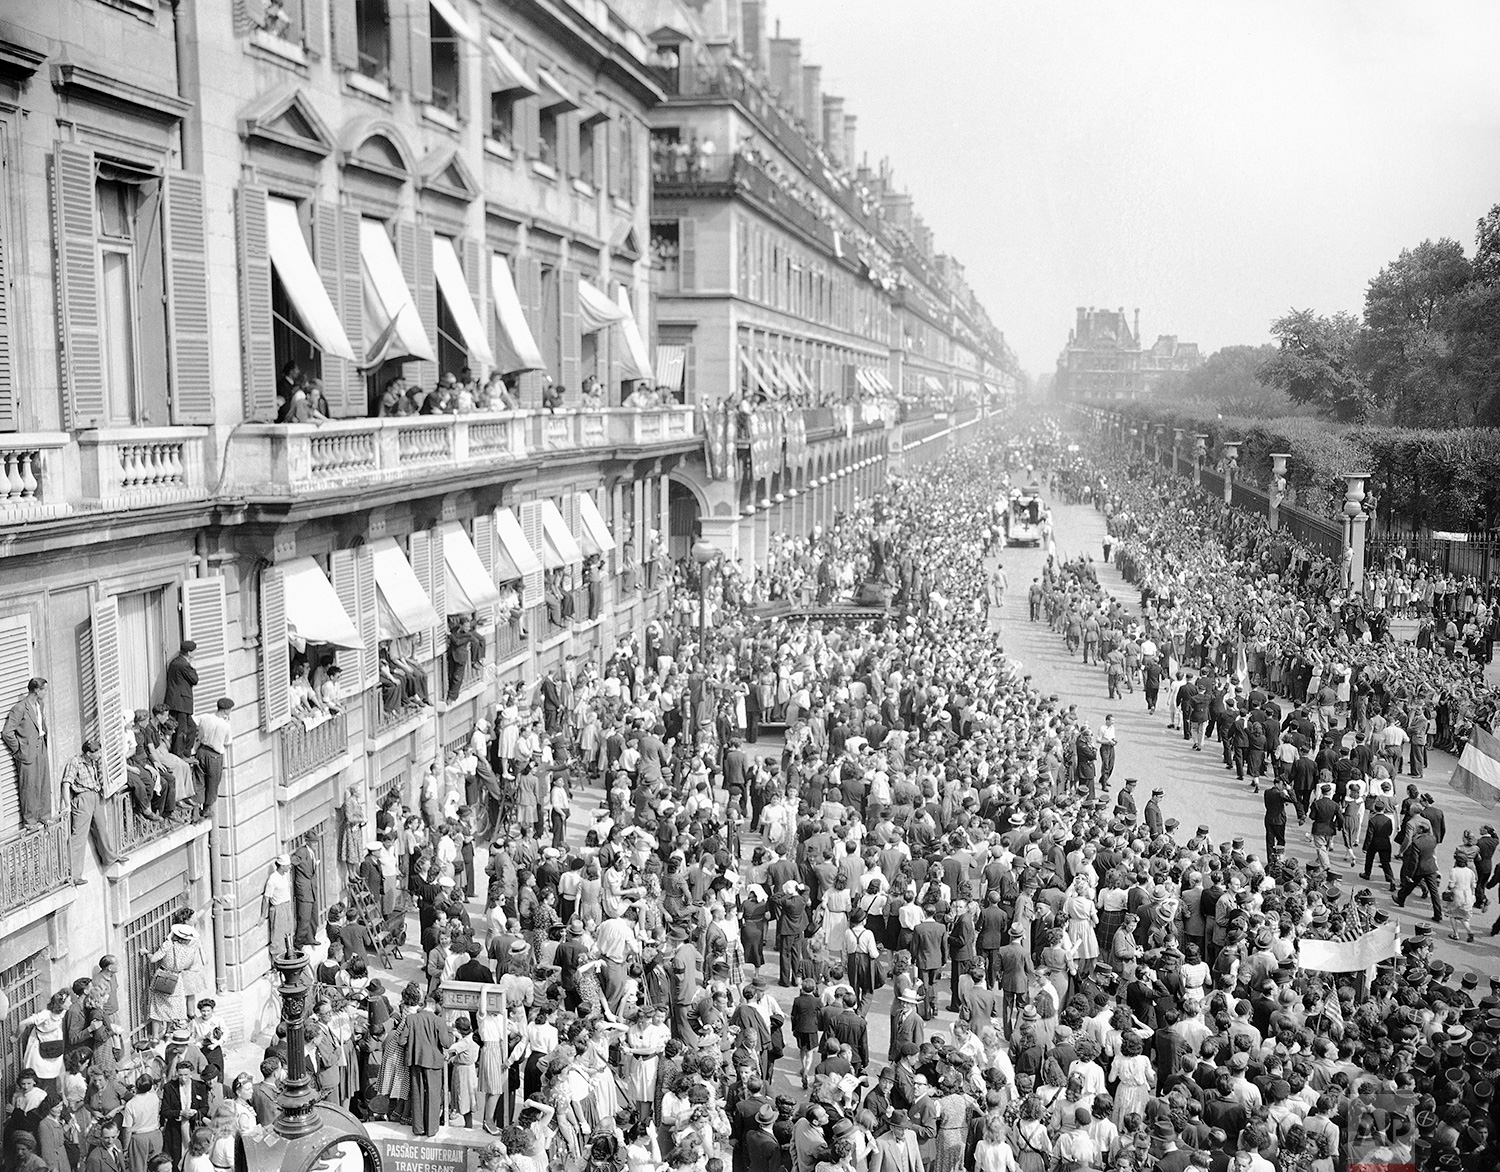 Through streets lined with madly cheering Parisians, General Charles de Gaulle made his parade from the Arc de Triomphe to the Place de La Concorde on August 27, 1944. From every building flew the tricolor flag, the Union Jack, and the Stars and Stripes. (AP Photo/Harry Harris)